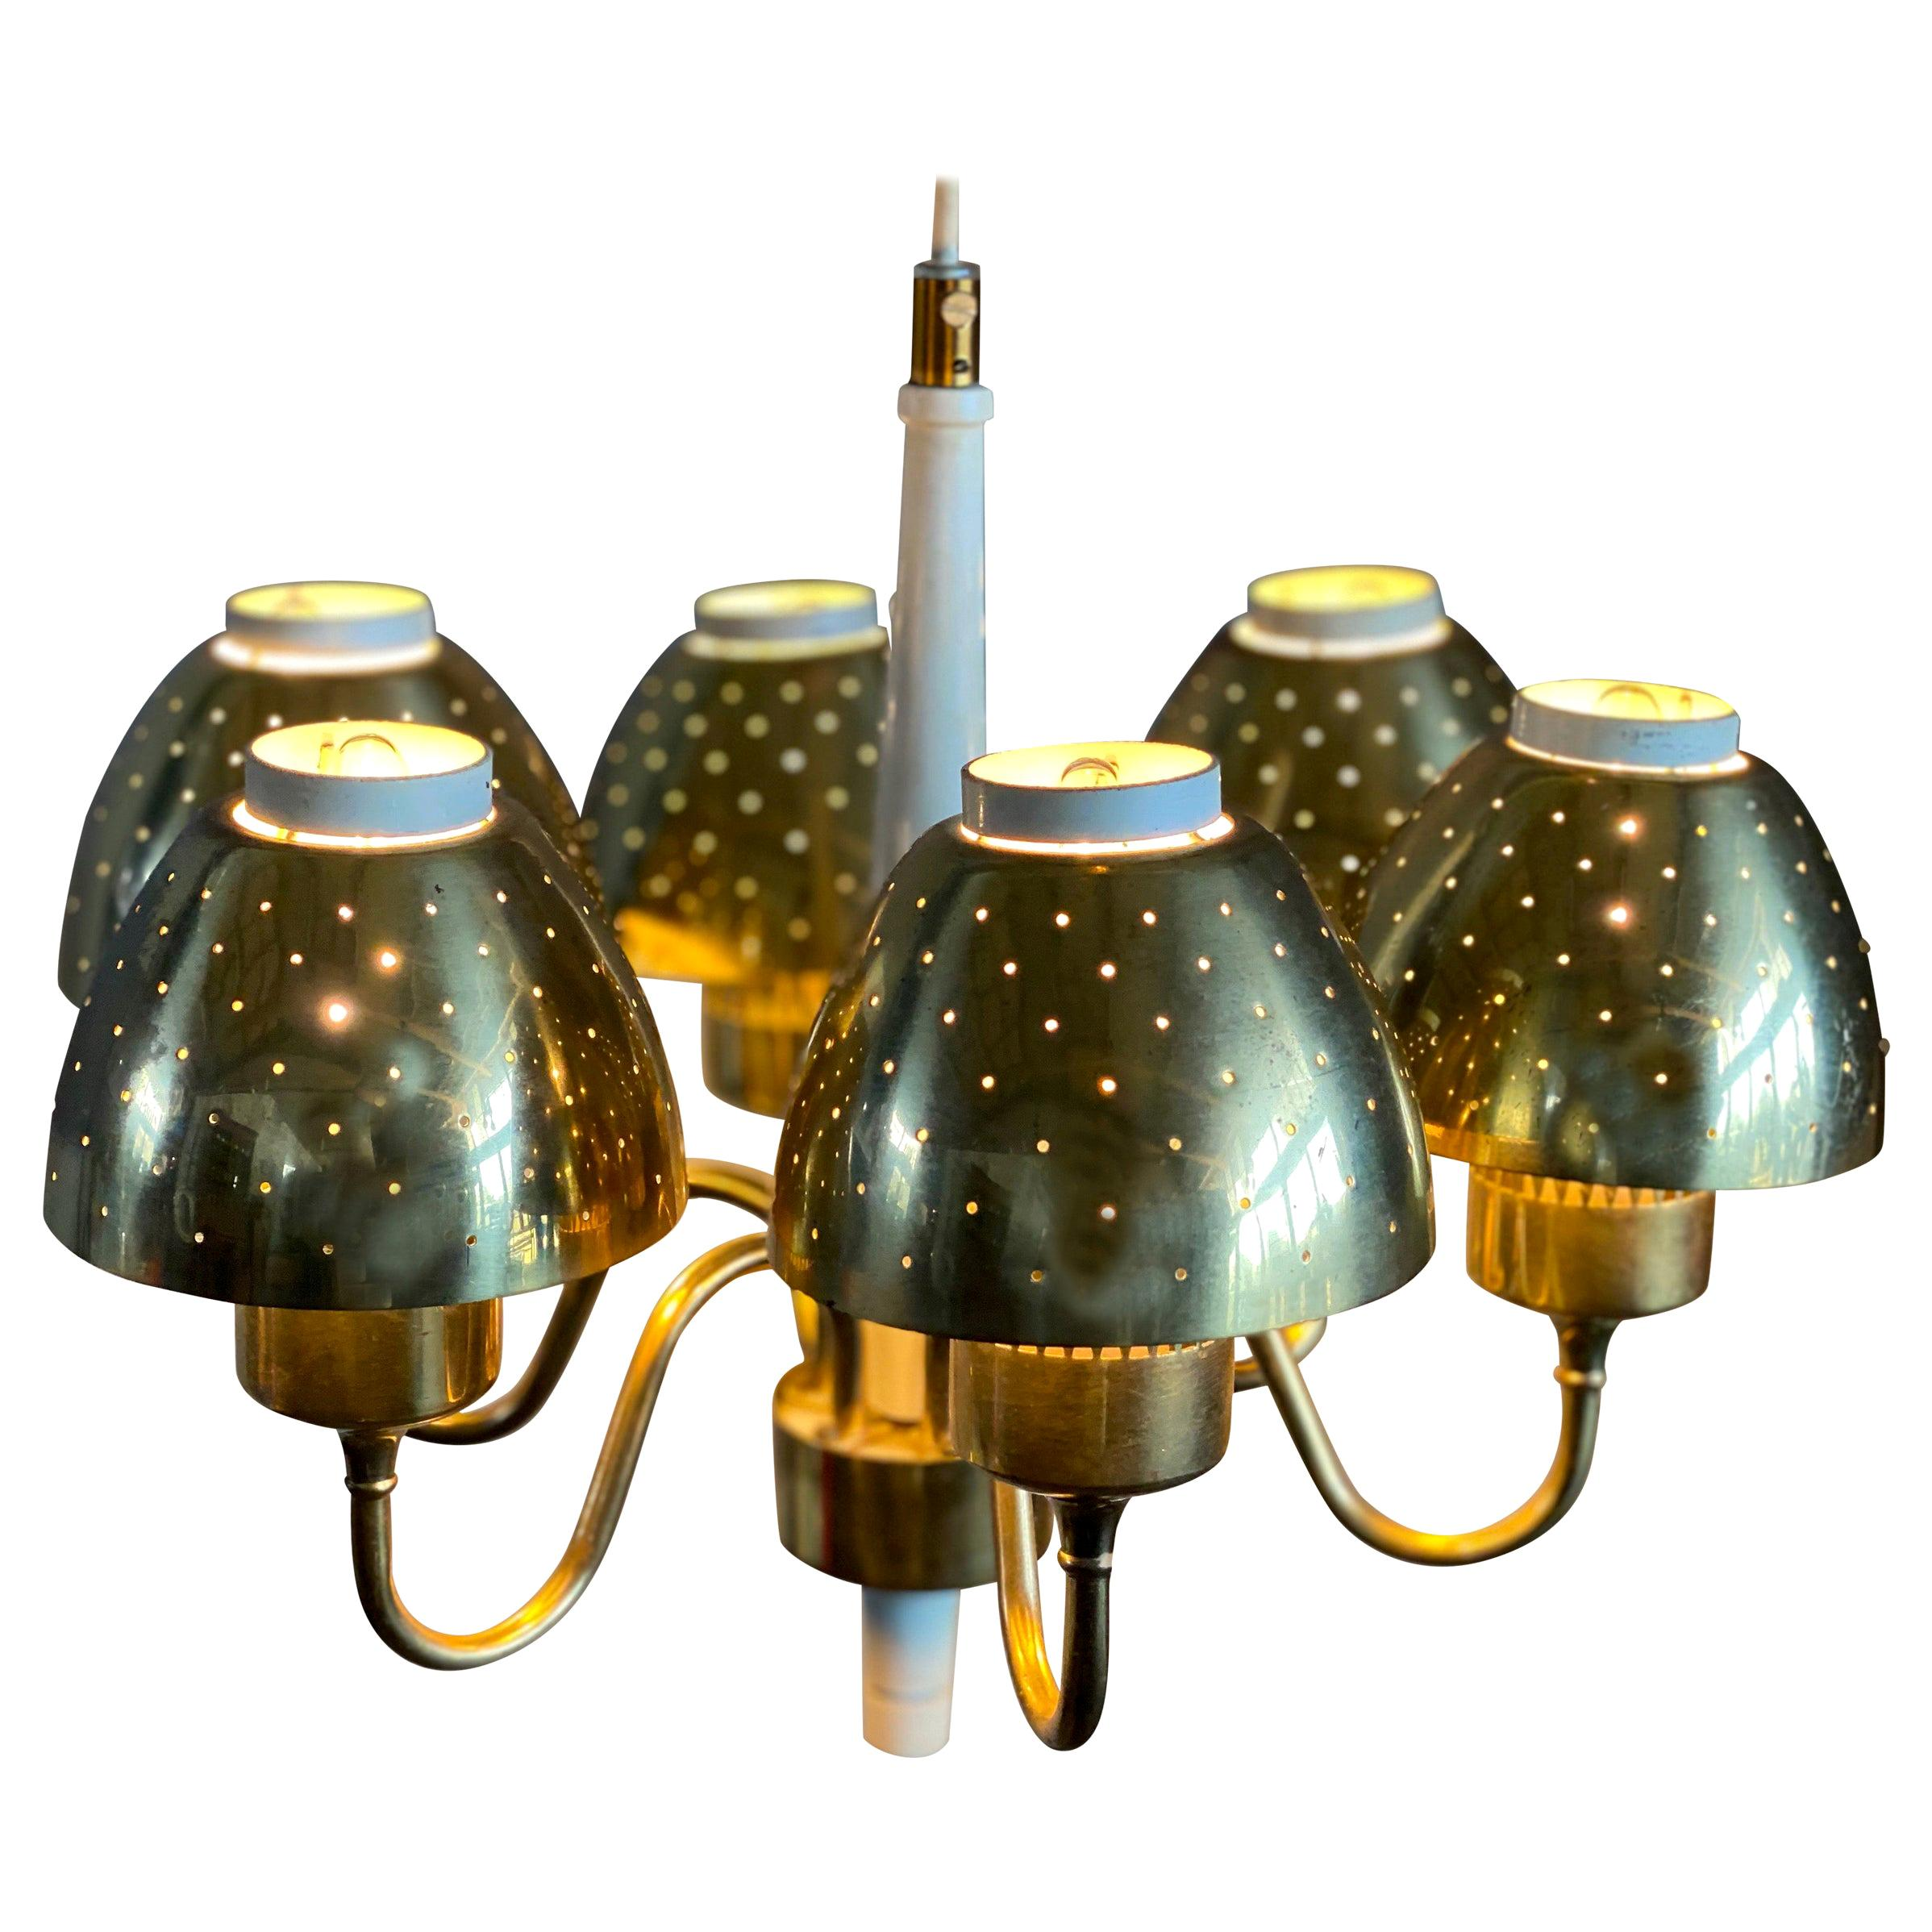 Brass Chandelier by Hans-Agne Jakobsson, Sweden, 1960s